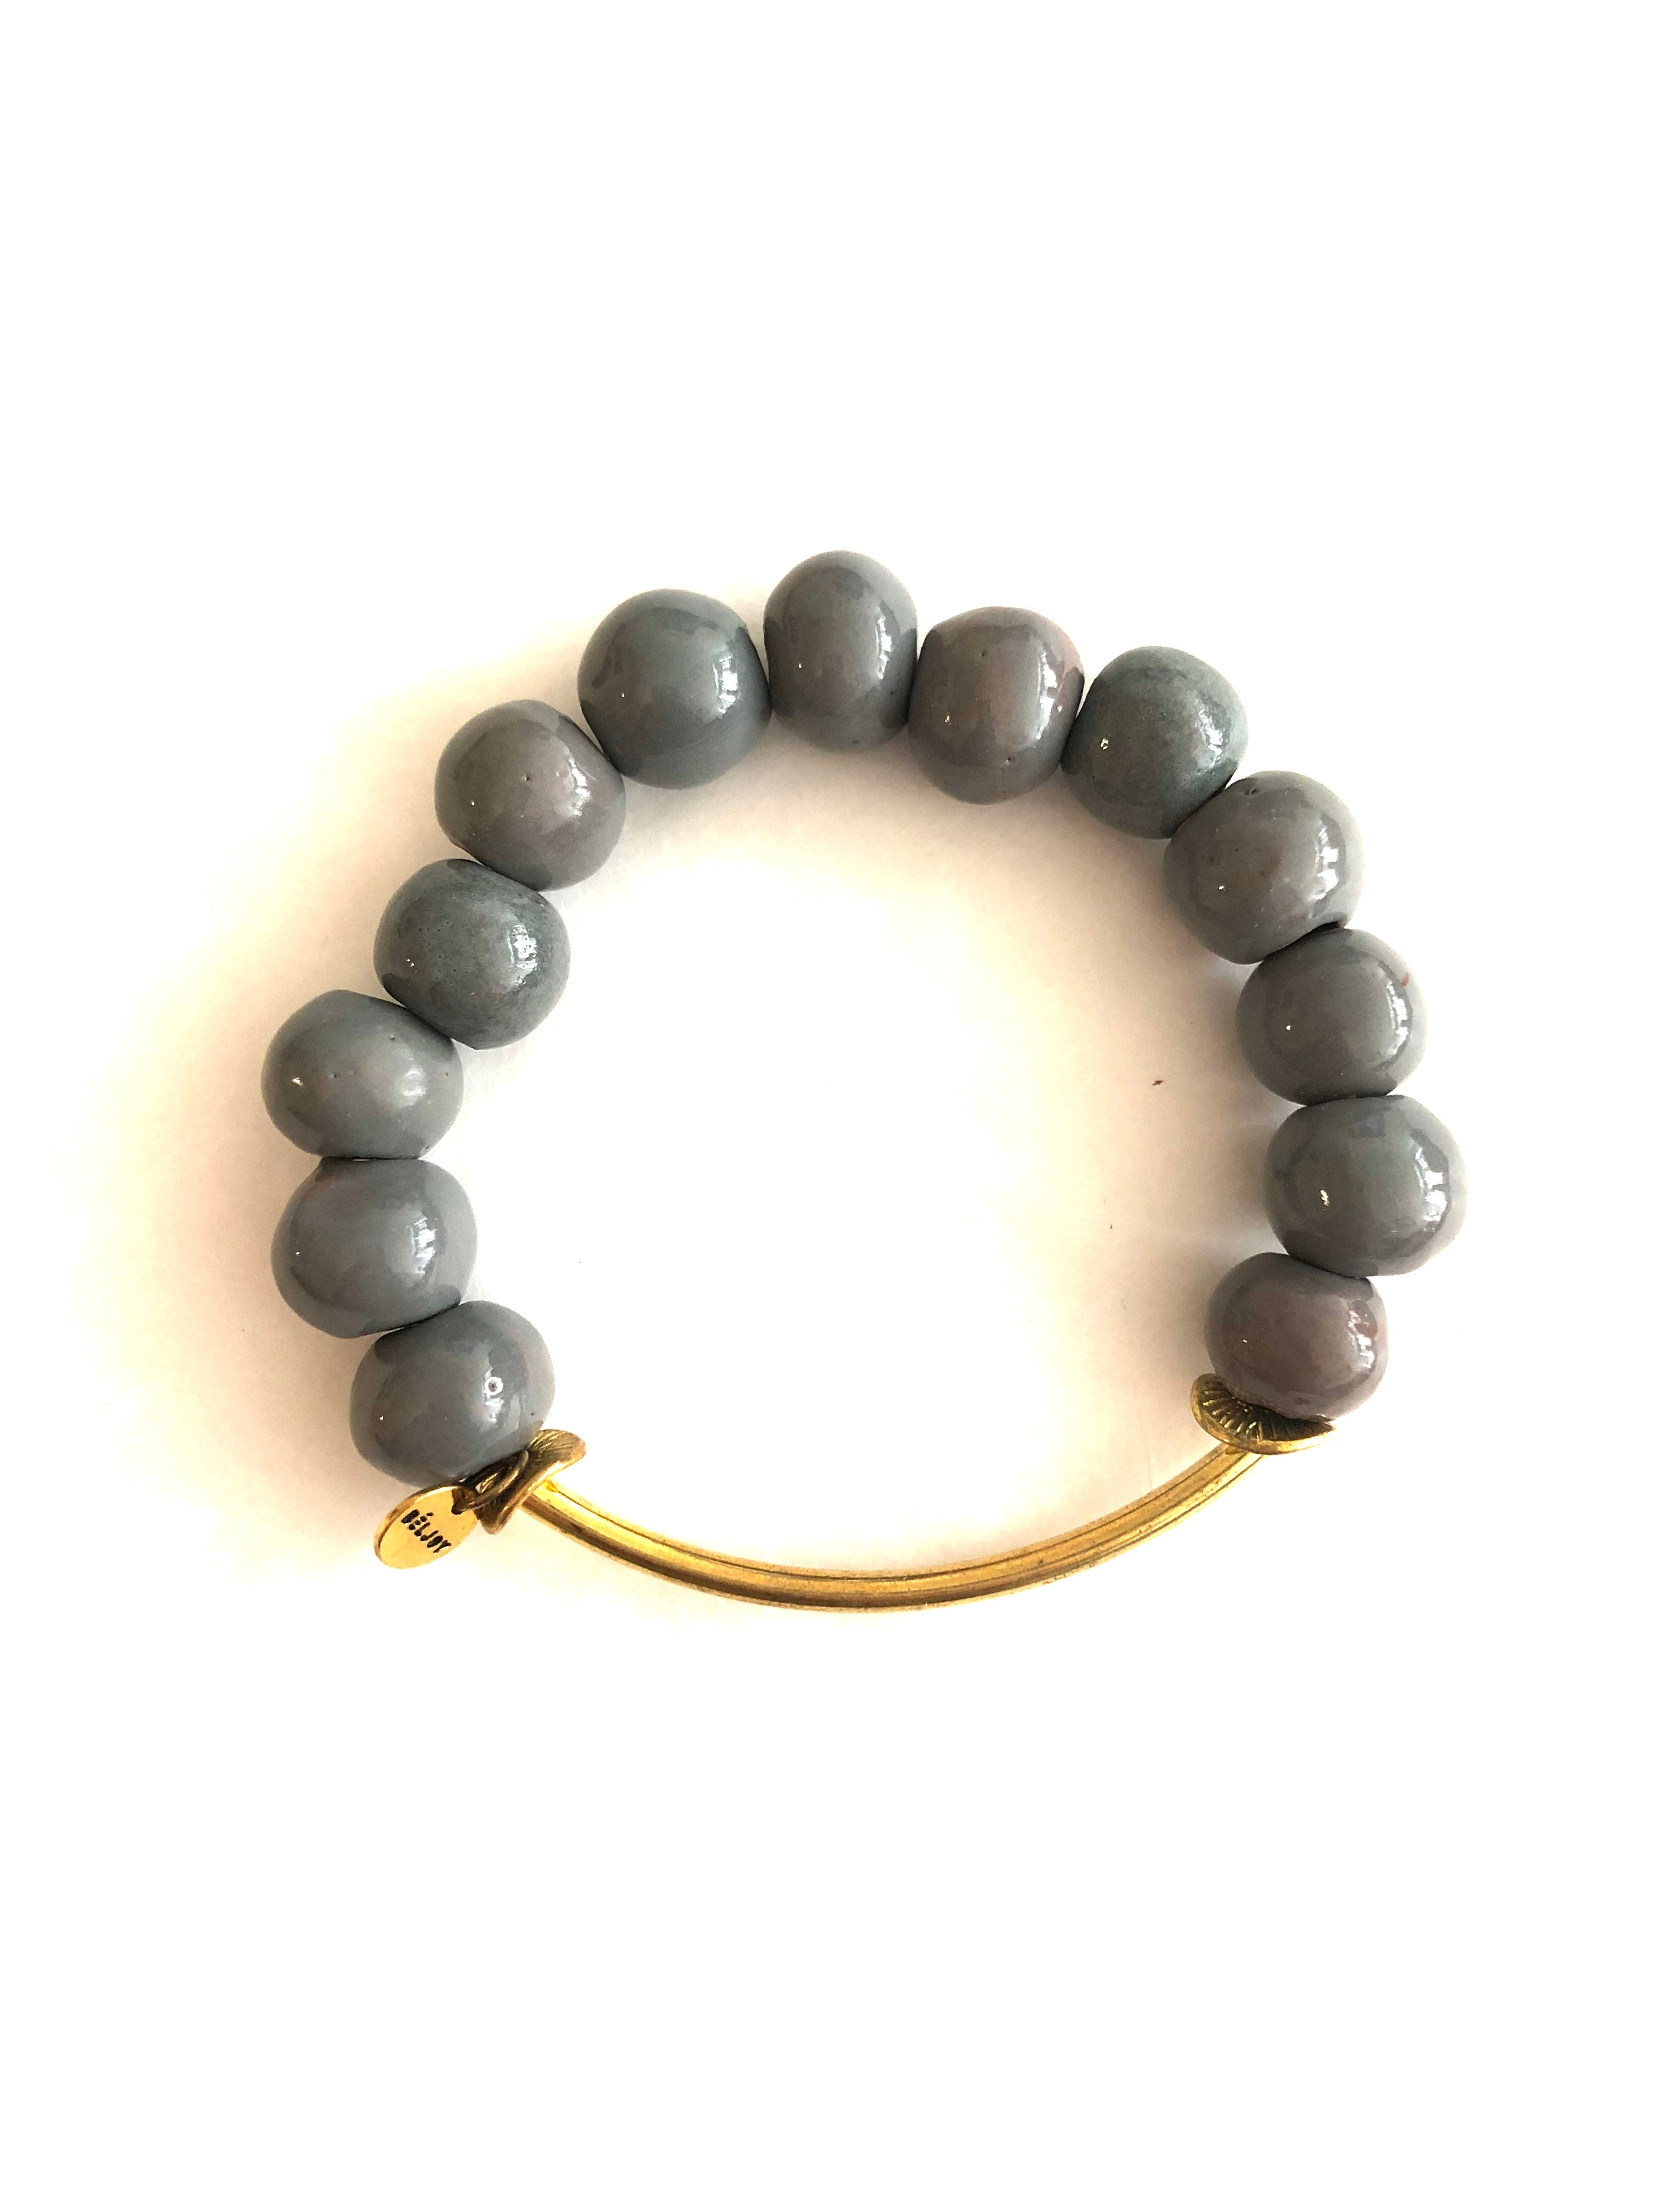 GREY BEAD + BRASS BAR BRACELET